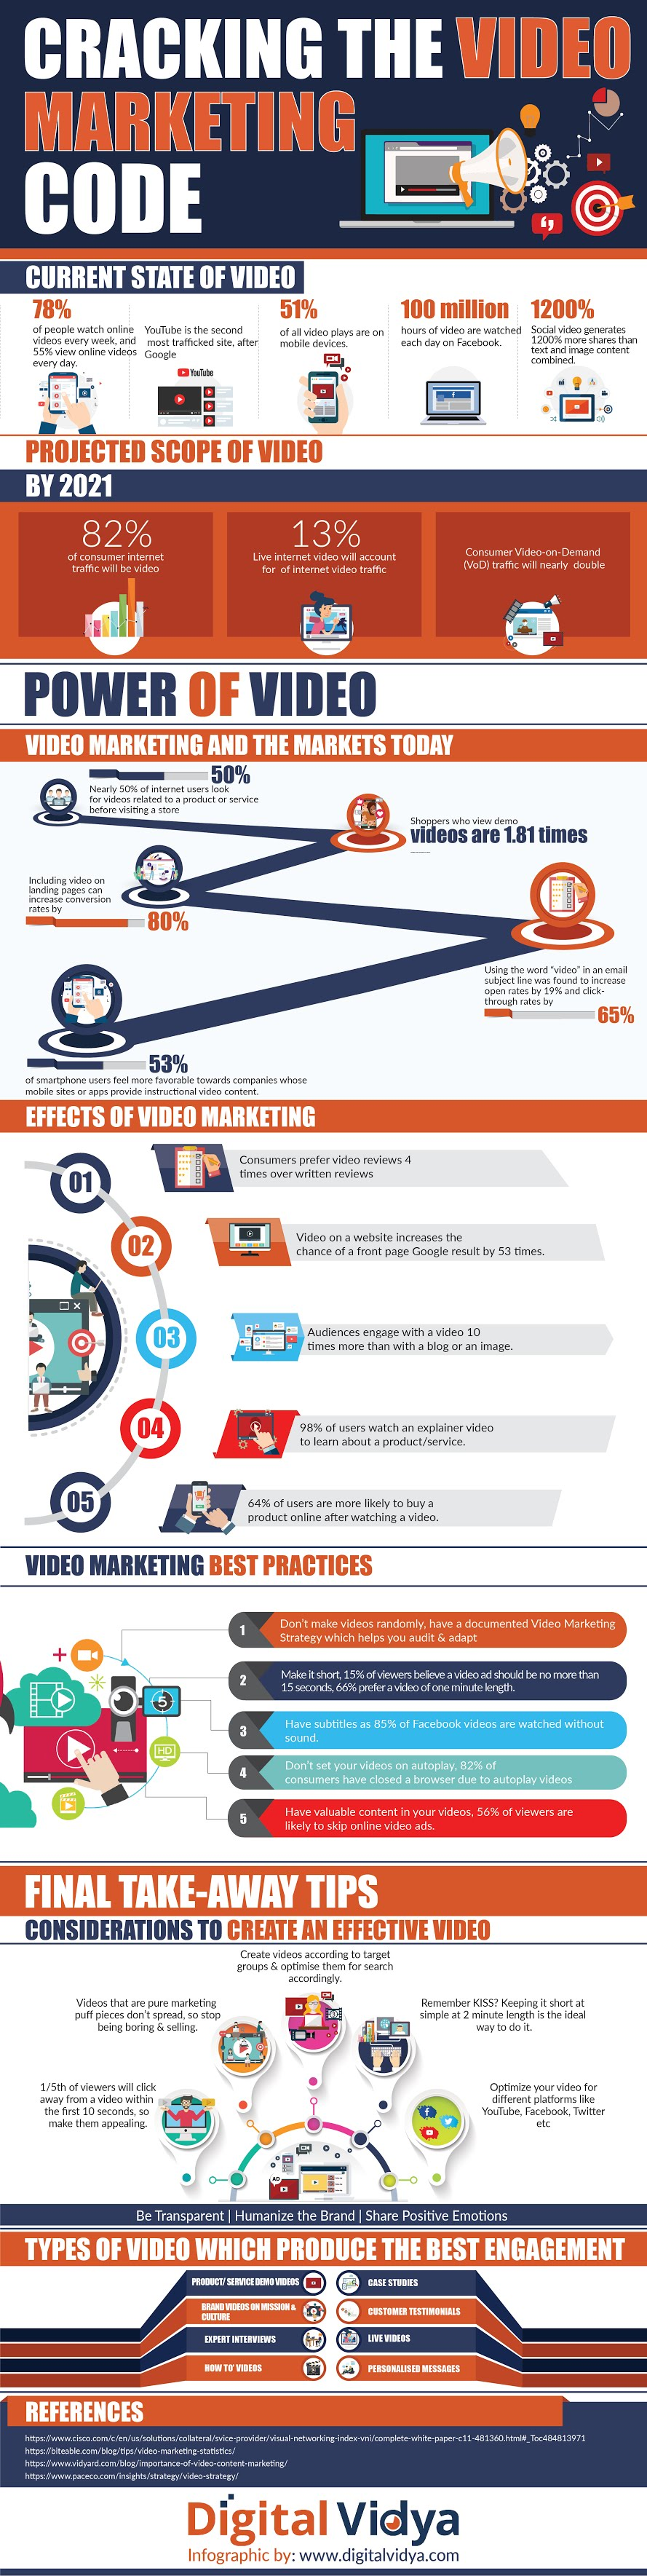 Cracking the Video Marketing Code Infographic